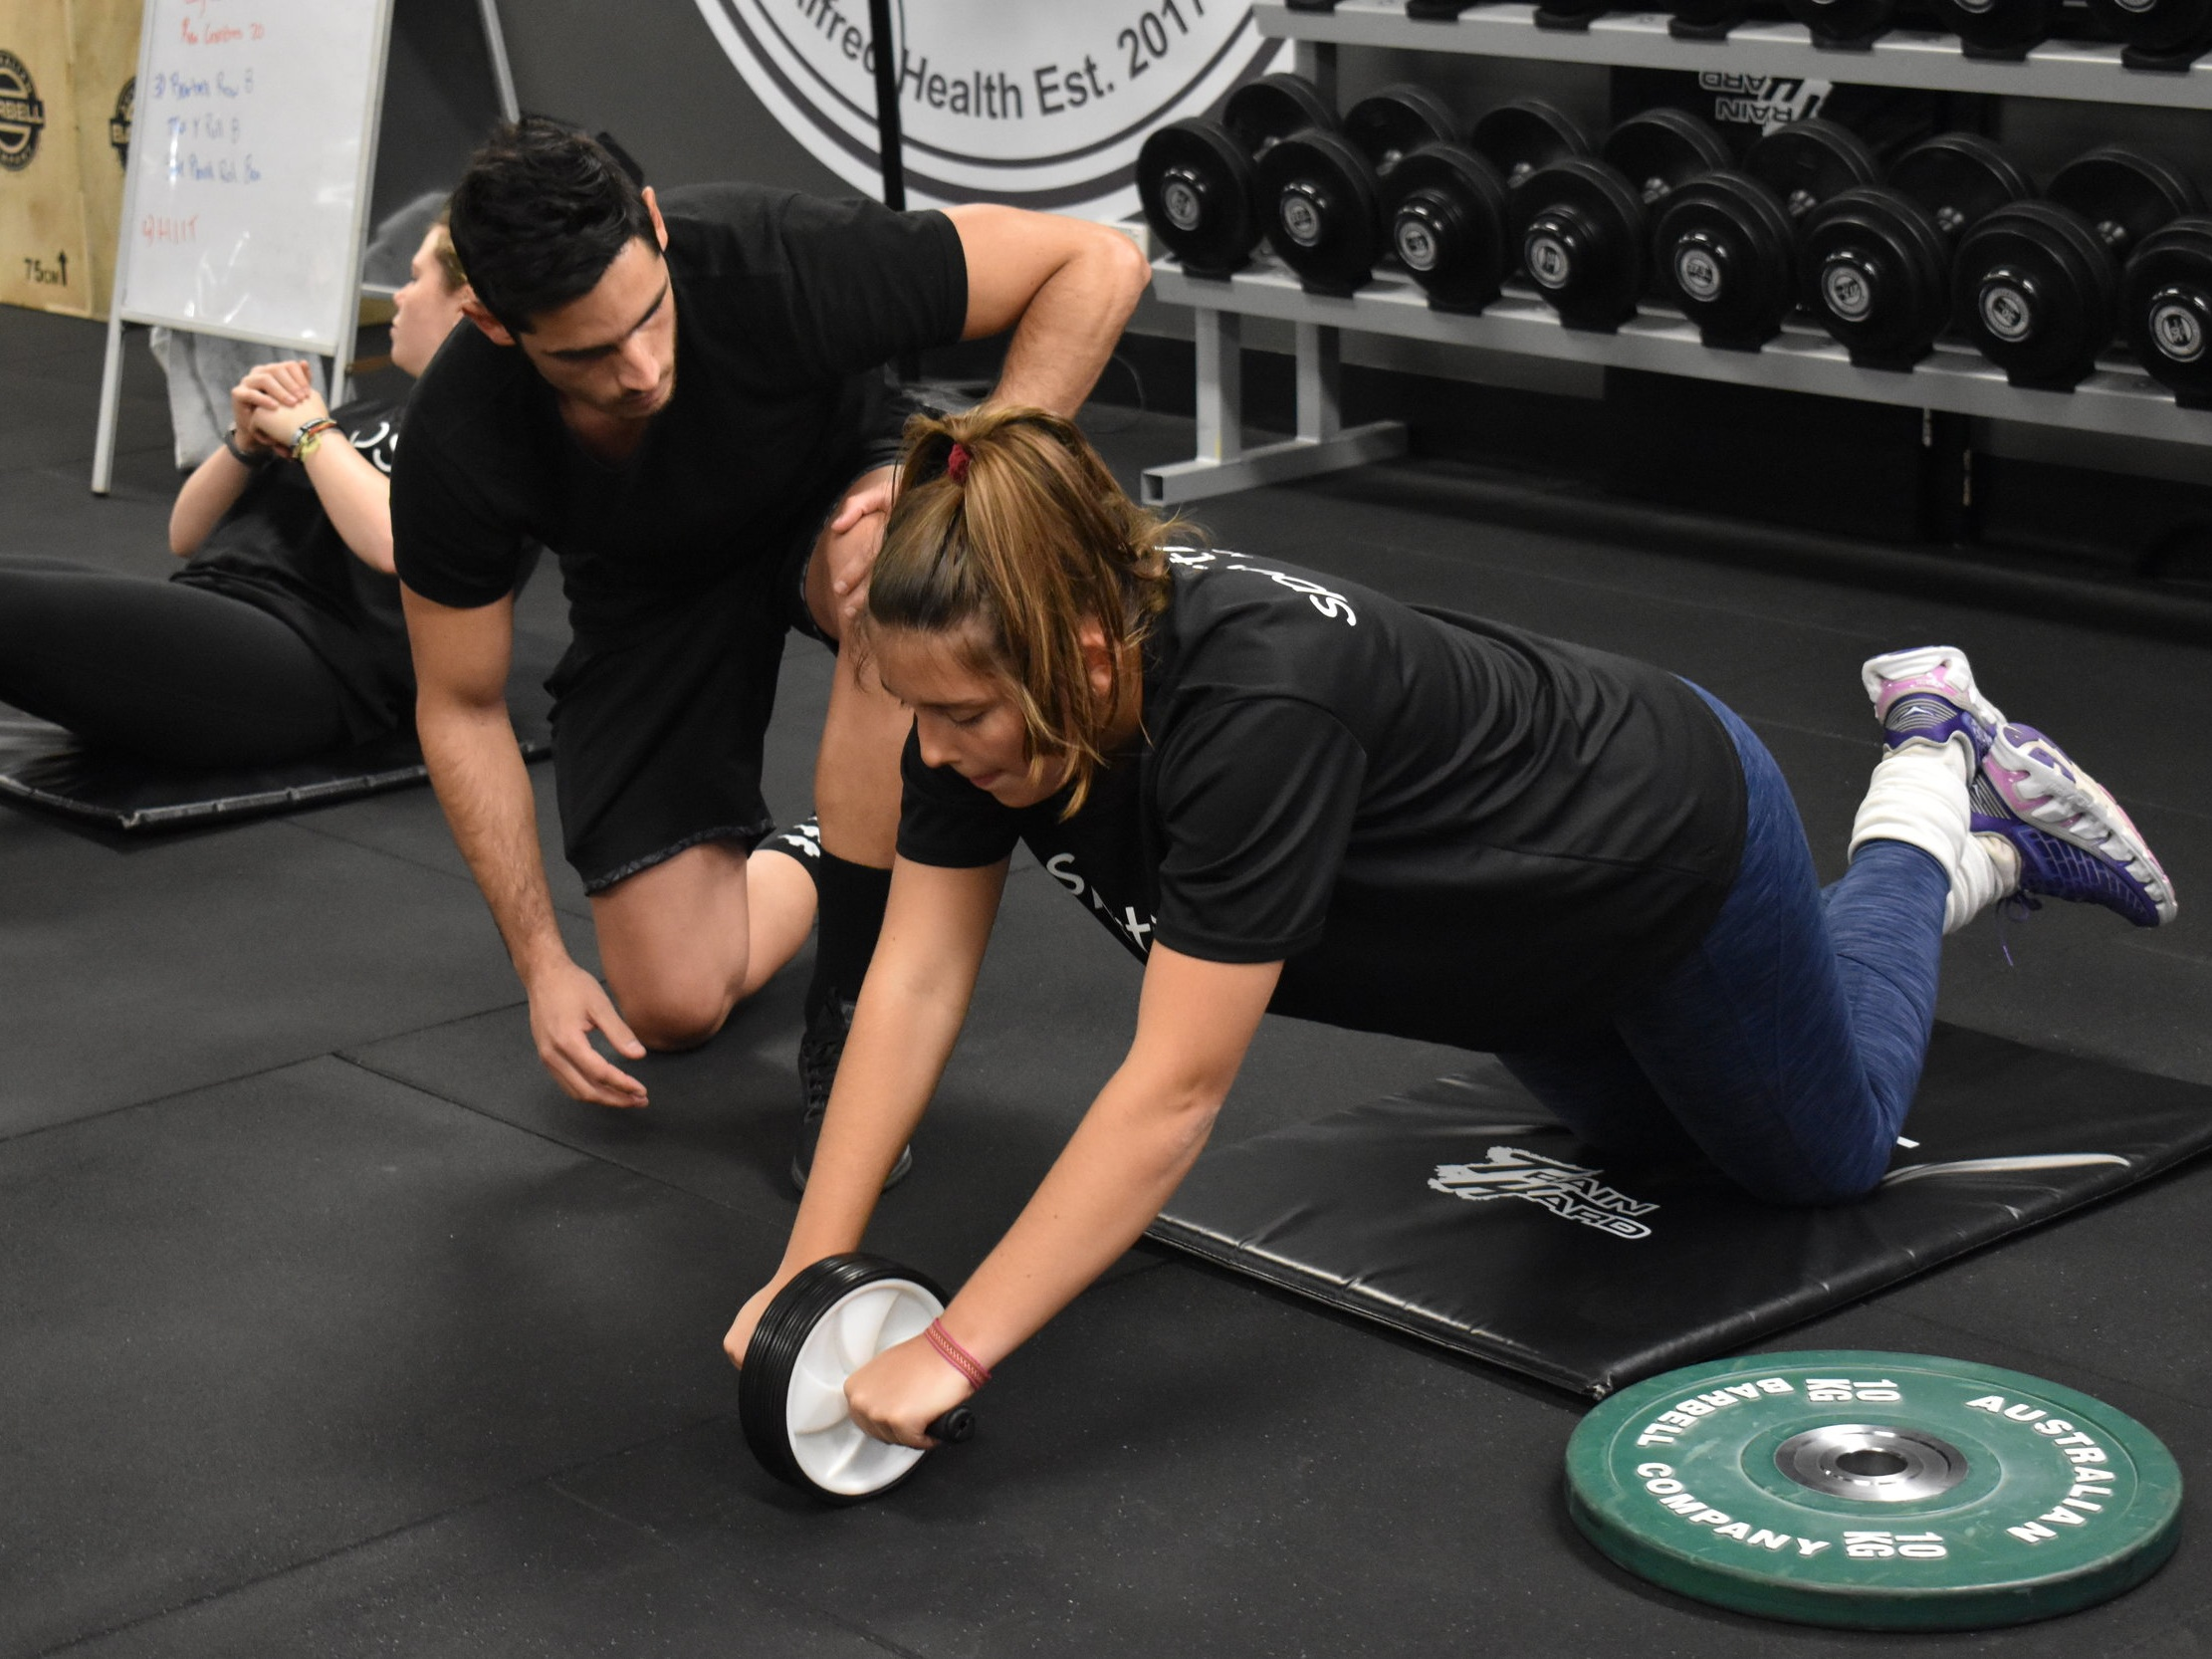 Strength & Conditioning - Support your on field ability by learning about nutrition, training in a gym and following a hockey specific diet. Increase your strength, speed and agility with our strength and conditioning experts.